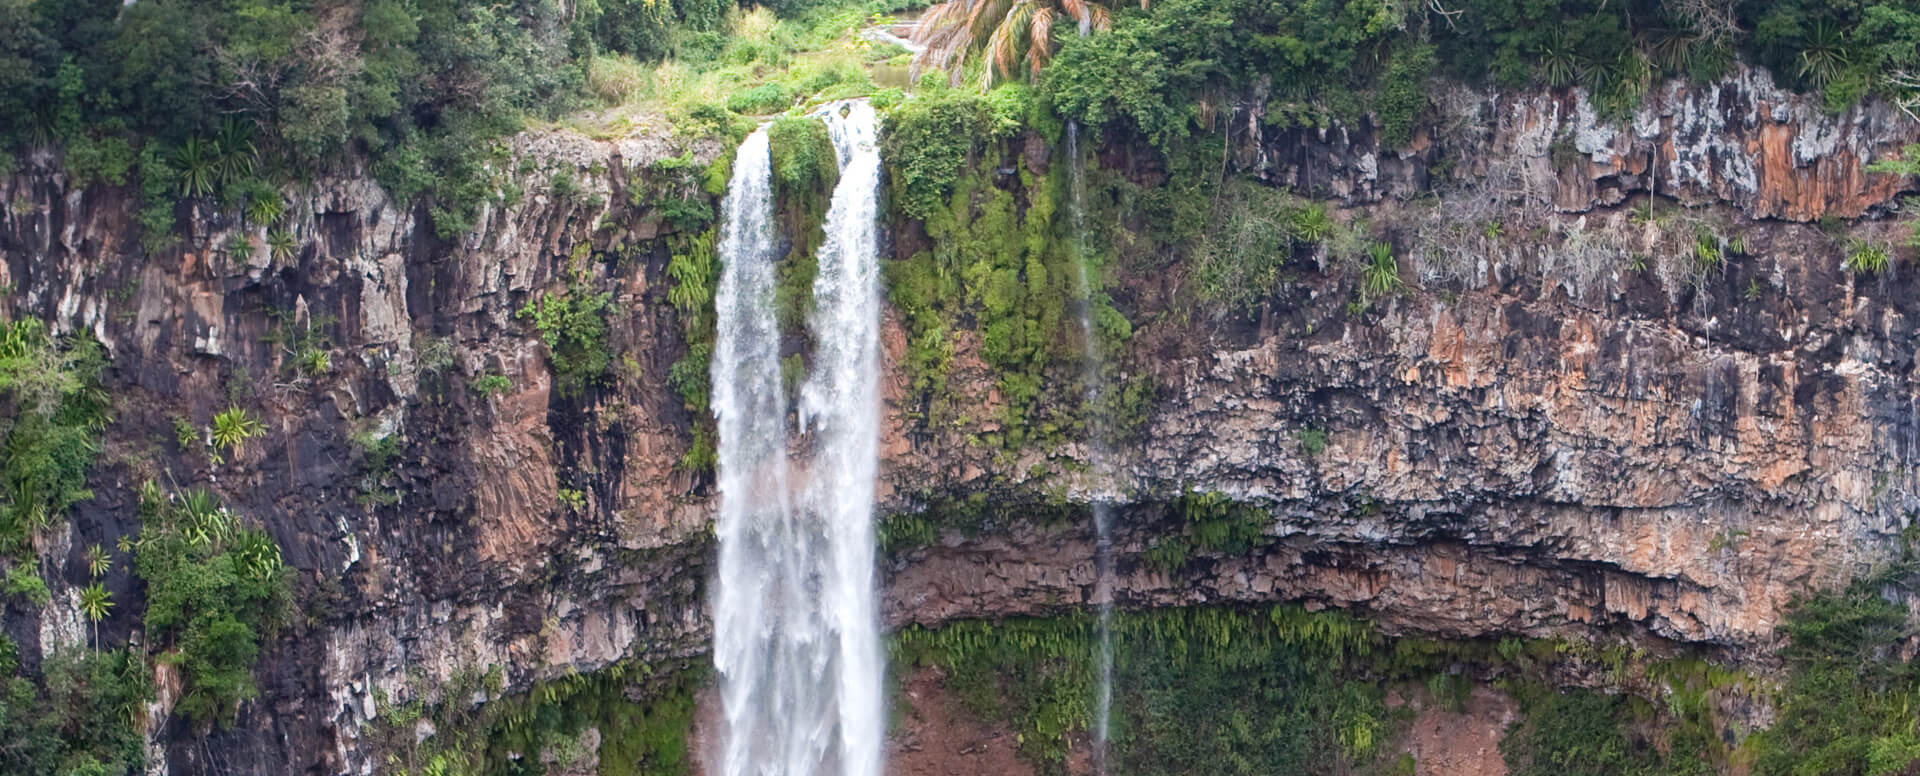 Admire the spectacular waterfalls of Tamarin - Mauritius